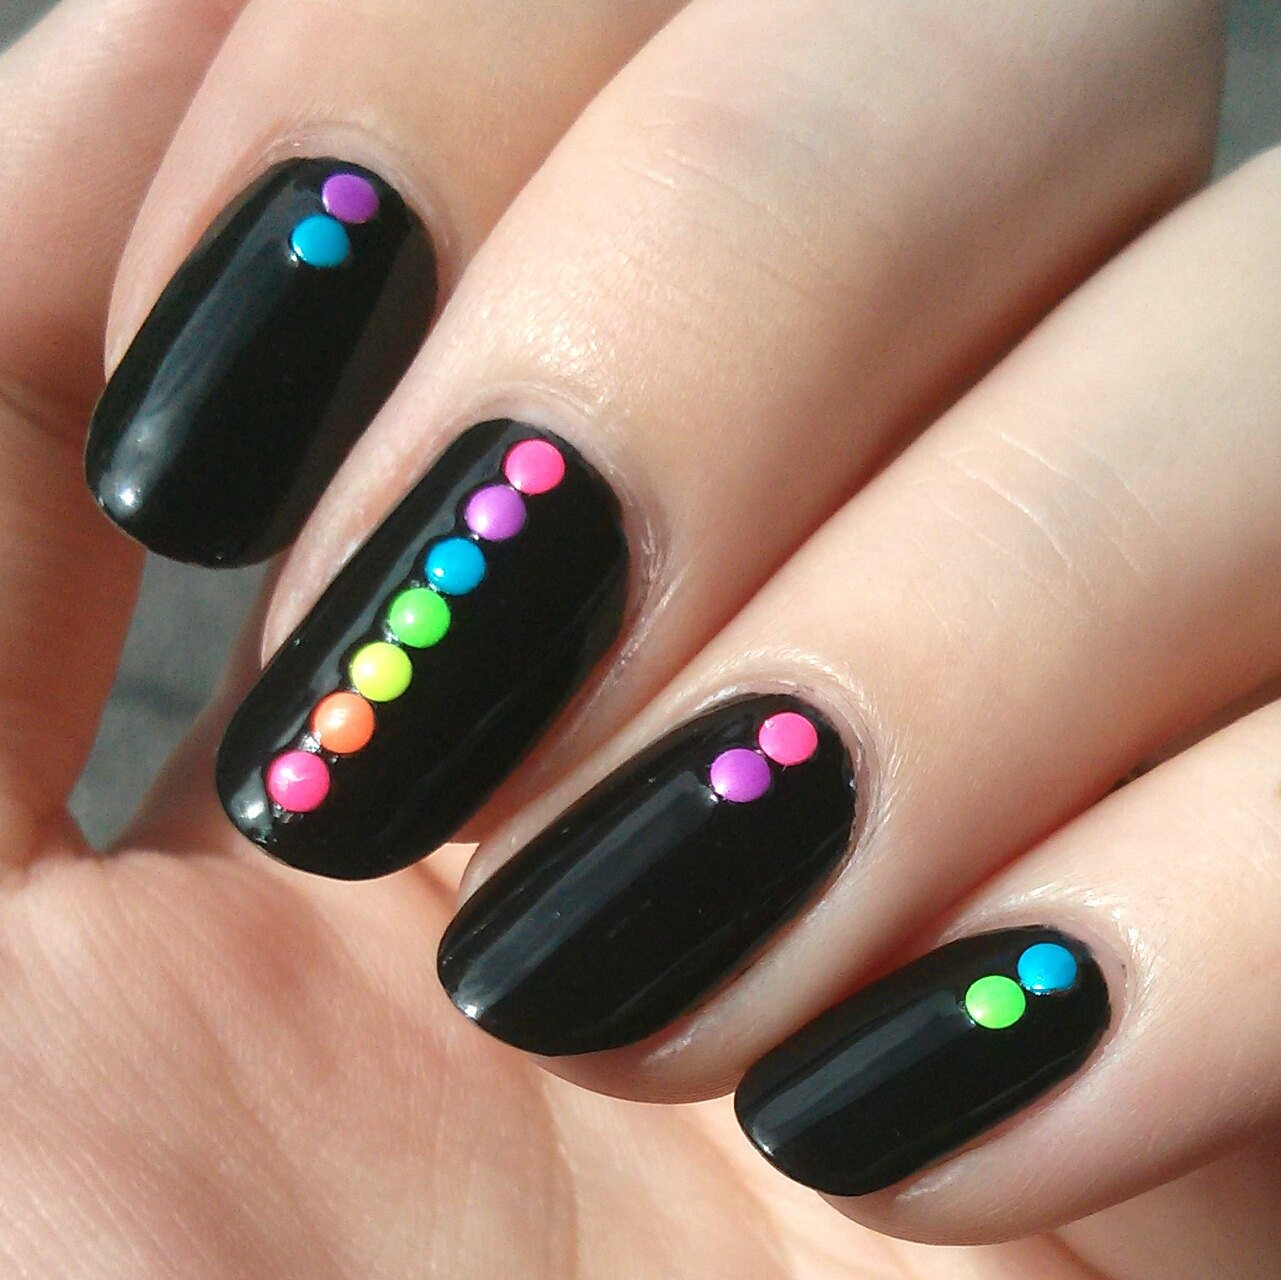 Simple Nail Art Designs Gallery: 35 Creativos Diseños De Uñas Con Puntitos